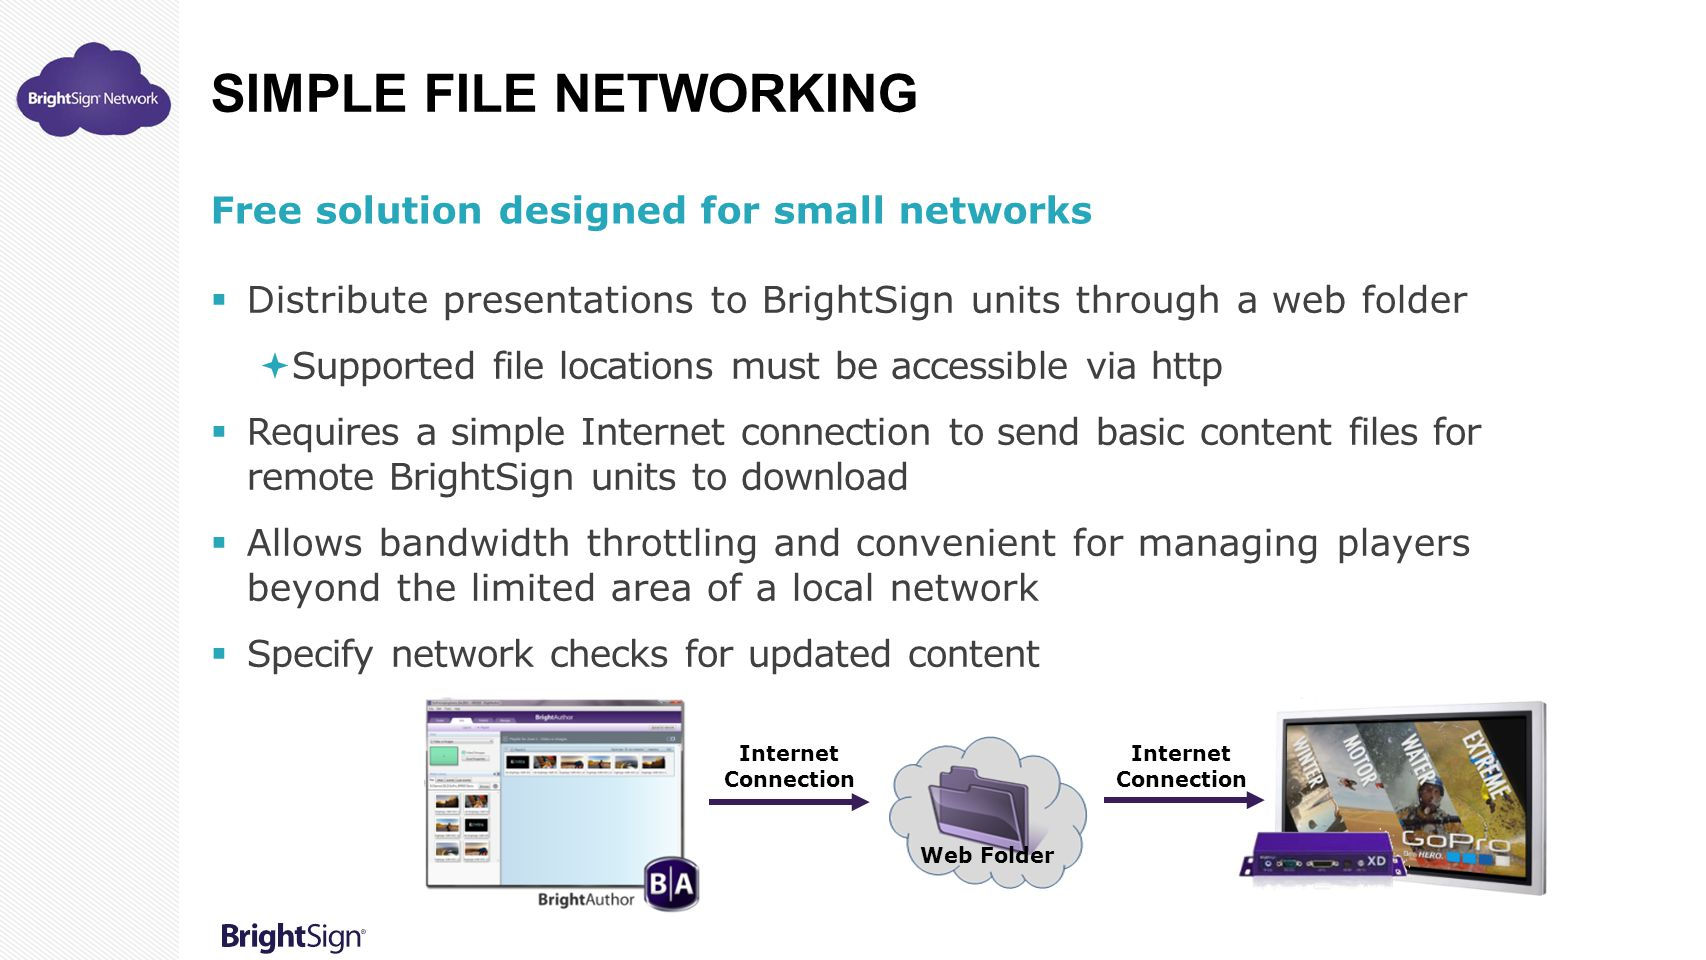 SIMPLE FILE NETWORKING Free solution designed for small networks  Distribute presentations to BrightSign units through a web folder  Supported file